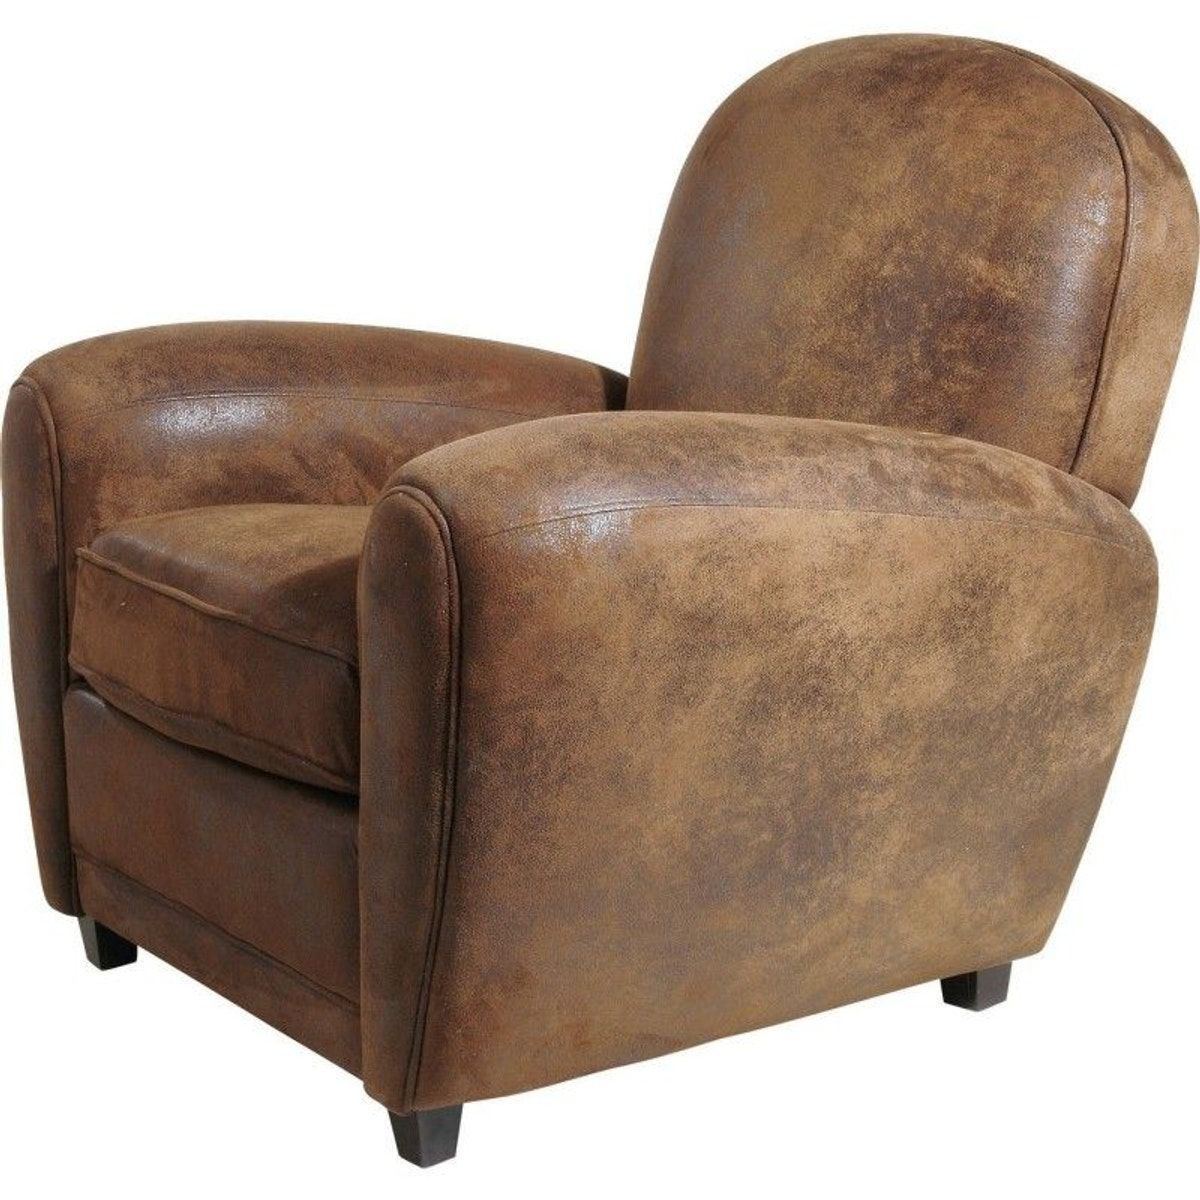 Round Club Taille1 Vintage Fauteuil Design Kare Place wPiTkZulOX